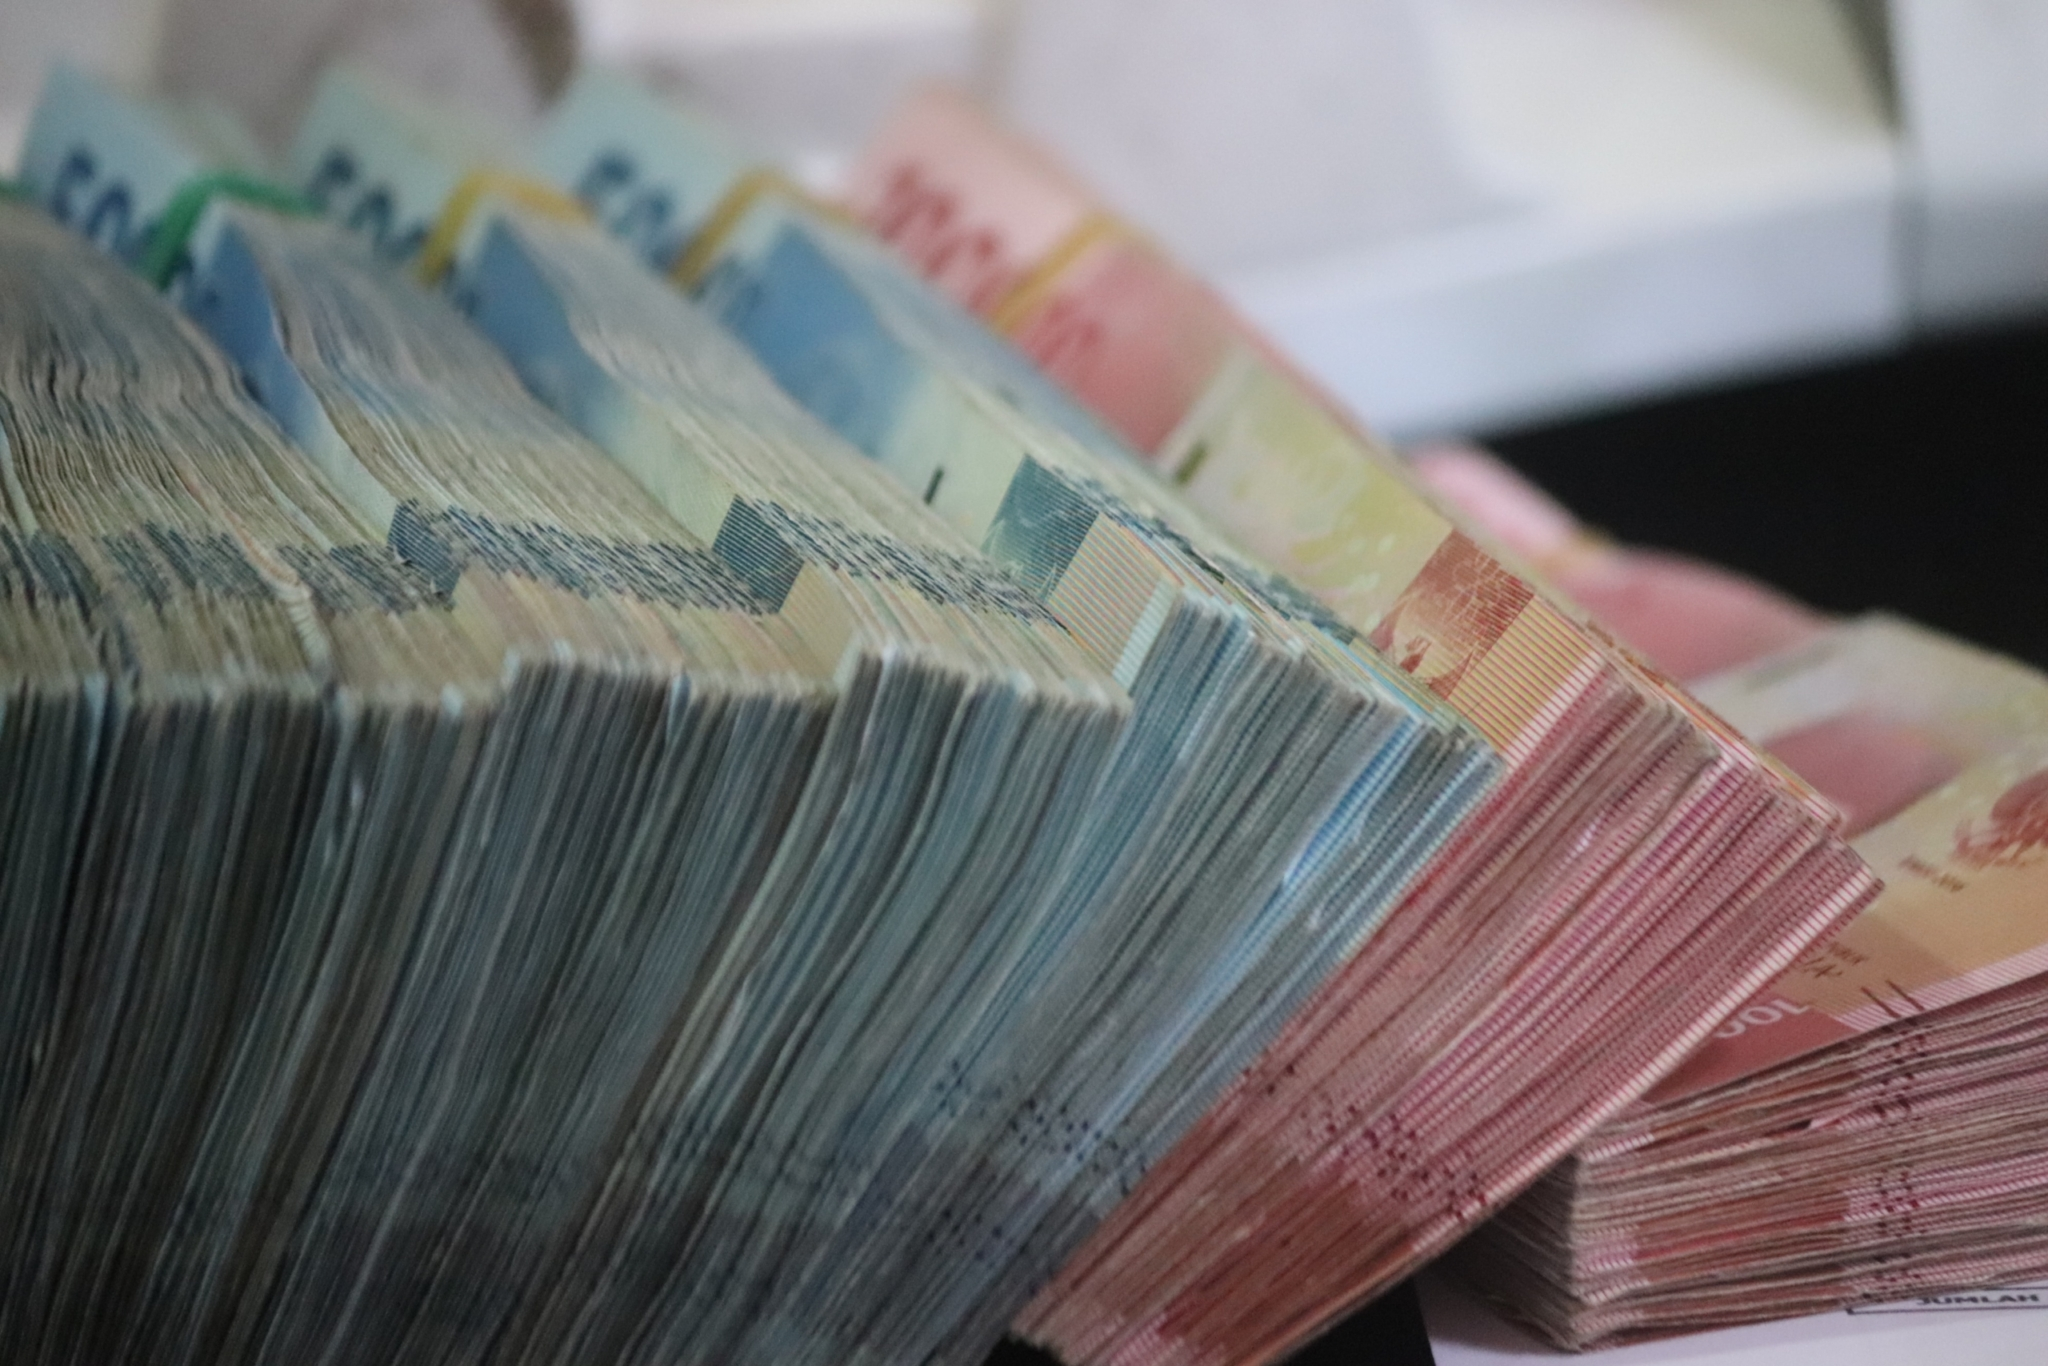 What You Need to Know About Counterfeit Currency